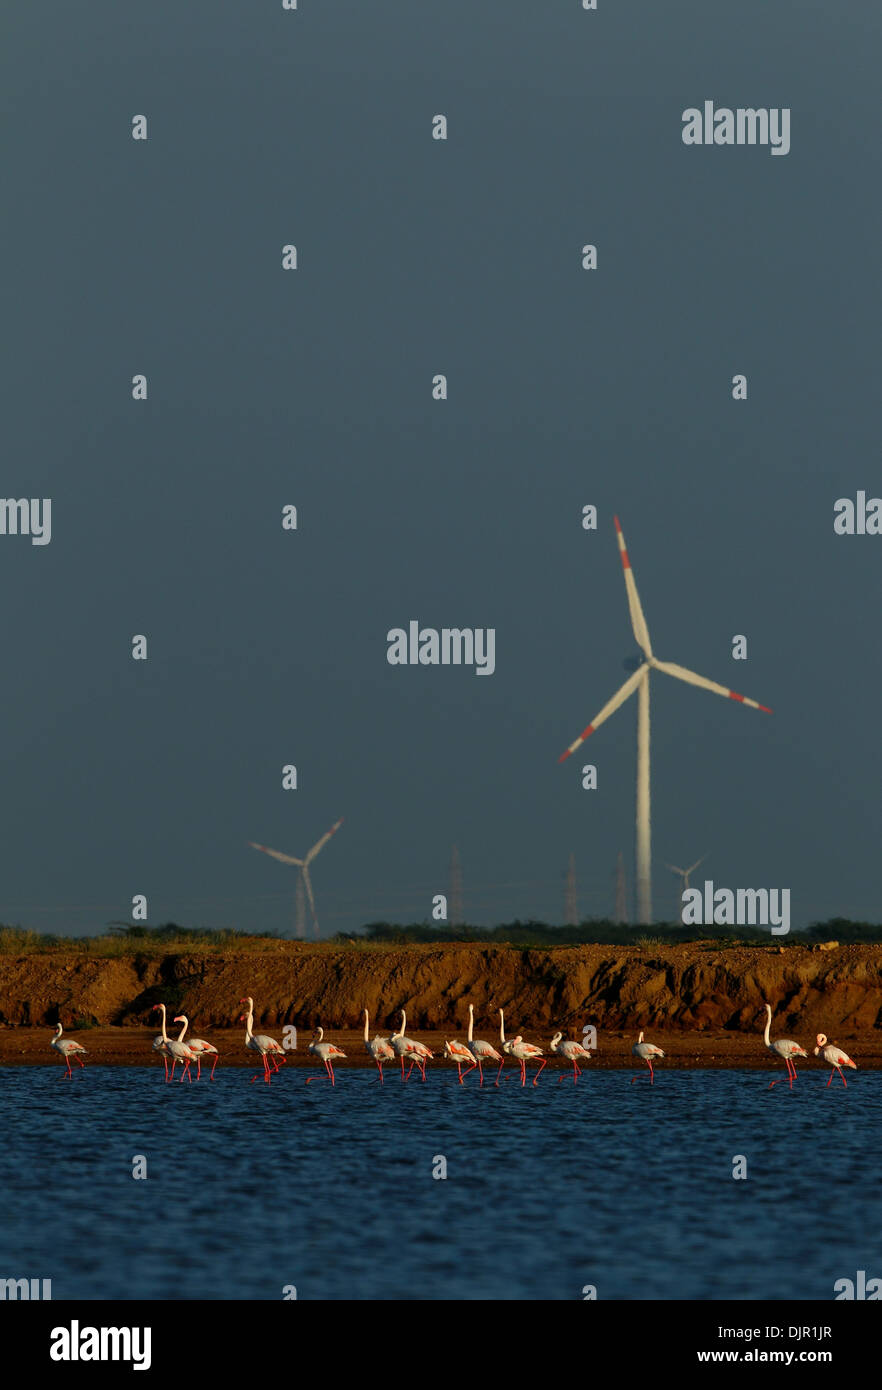 Flamingos against backdrop of wind mills in Gujarat, India - Stock Image